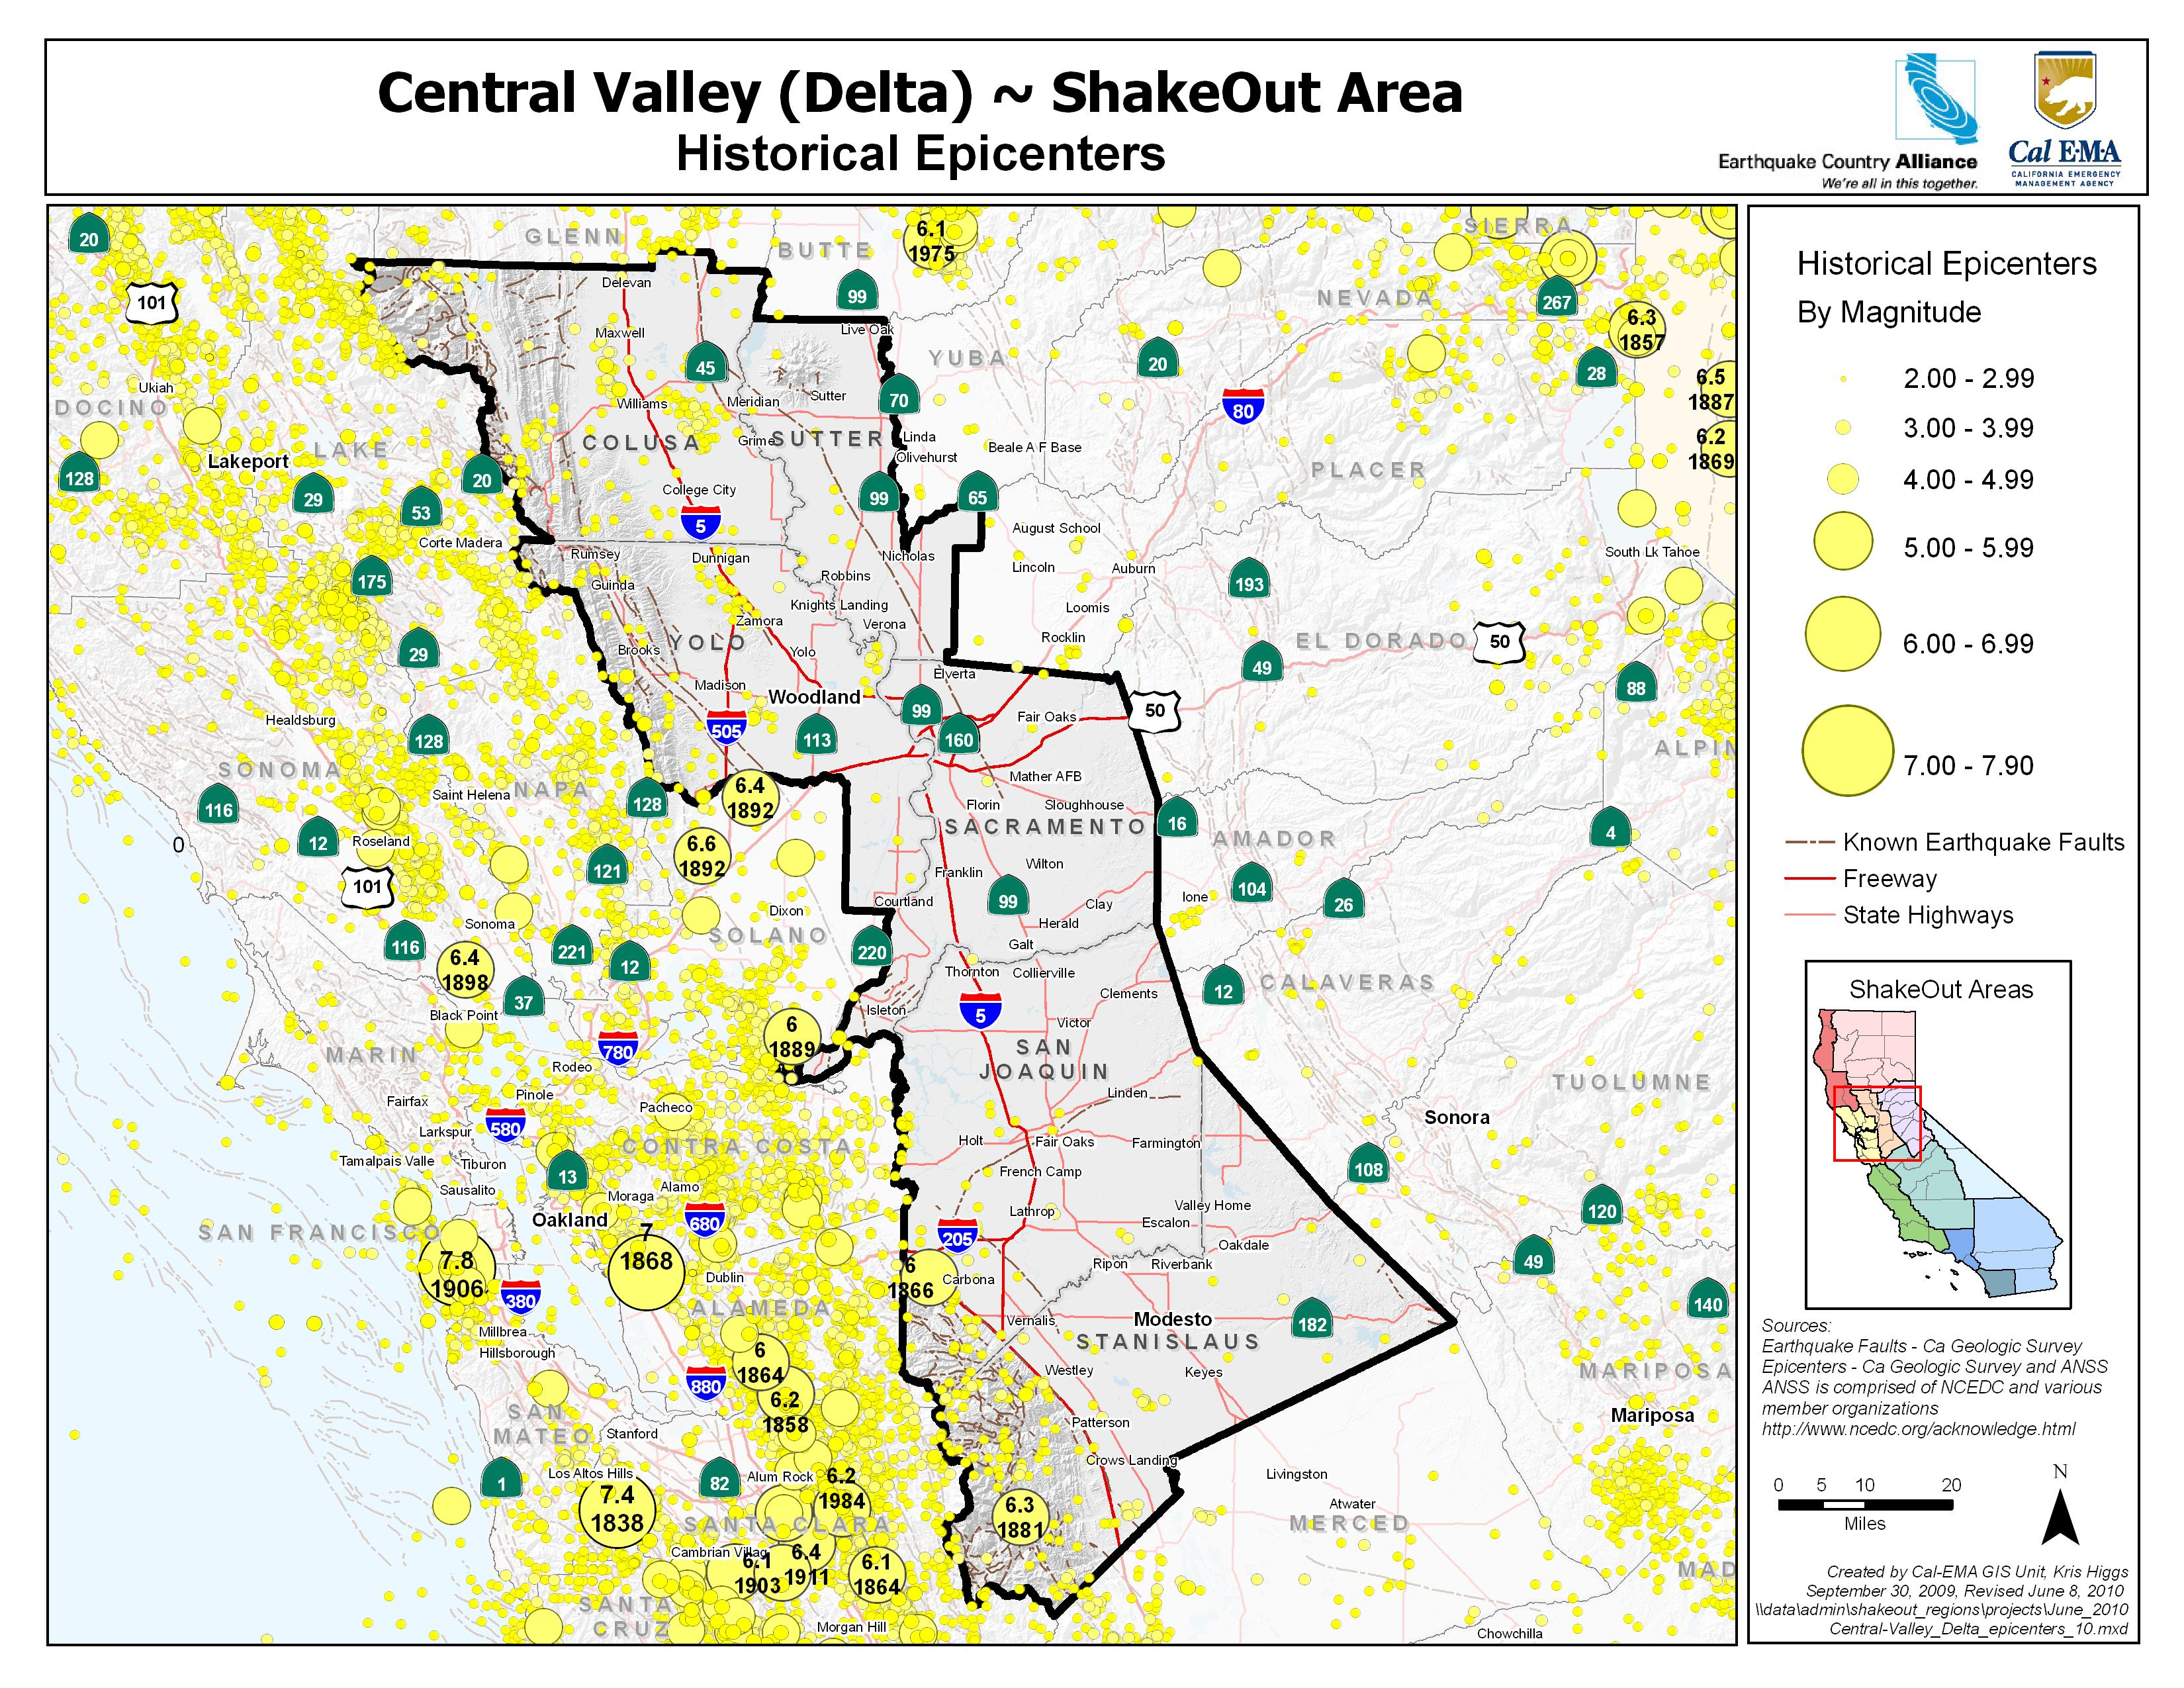 Delta Sierra Central Valley section Epicenters and